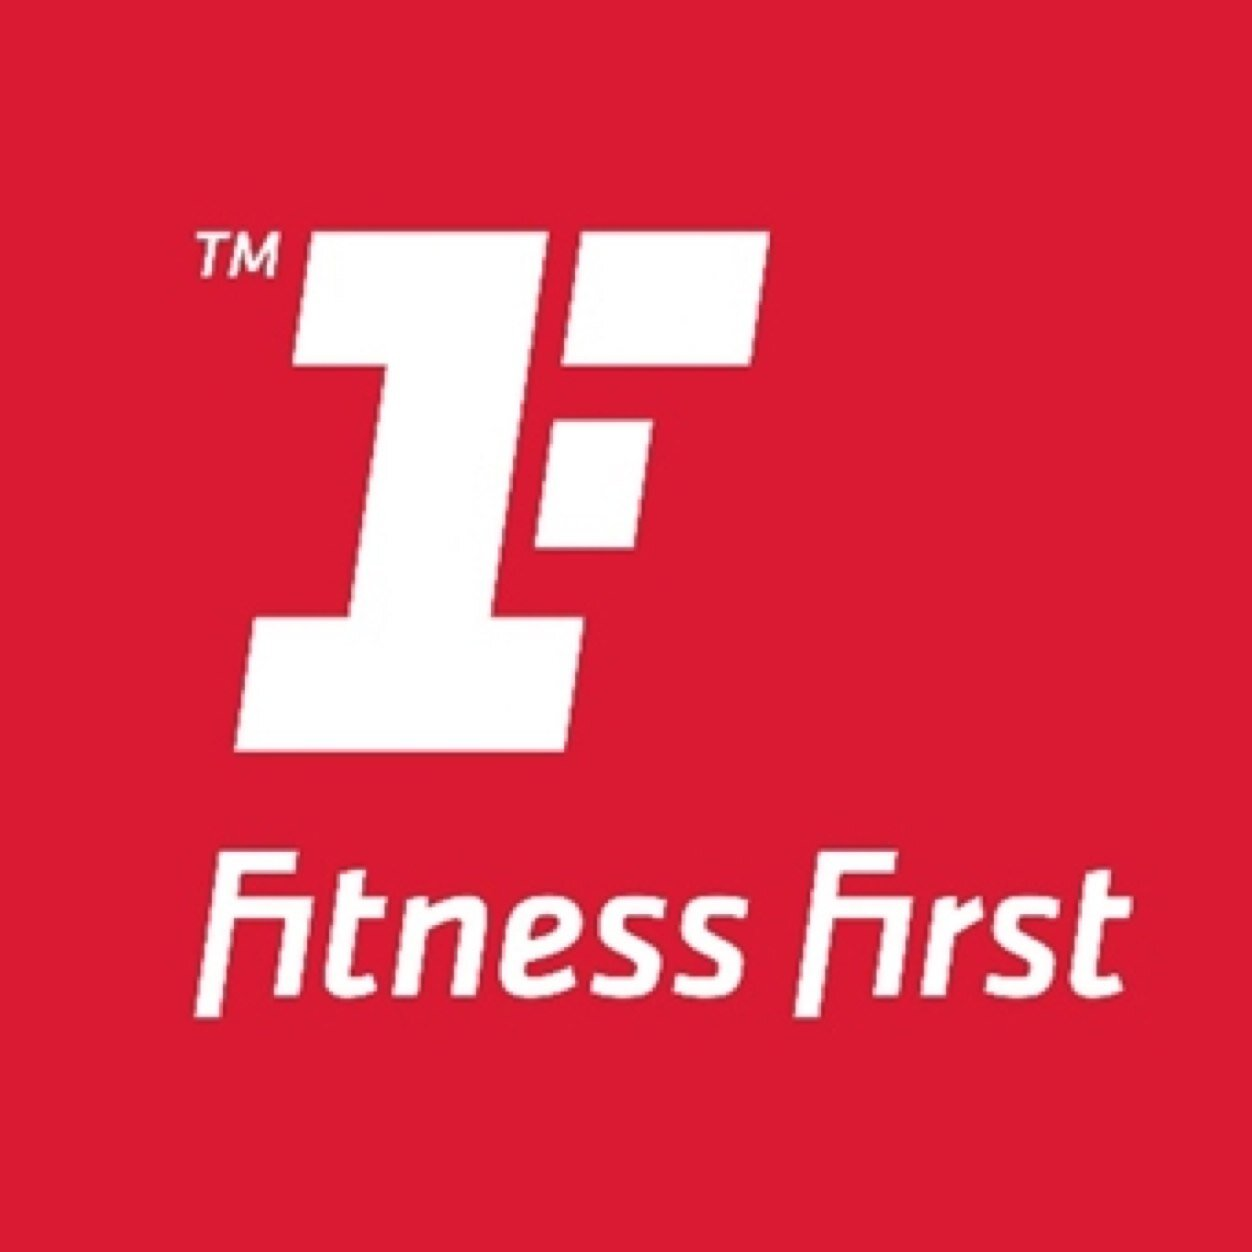 fitness first At fitness first we would like to assist you in accomplishing your fitness goals so  come and join our fitness center or enroll in one of our many fitness classes.